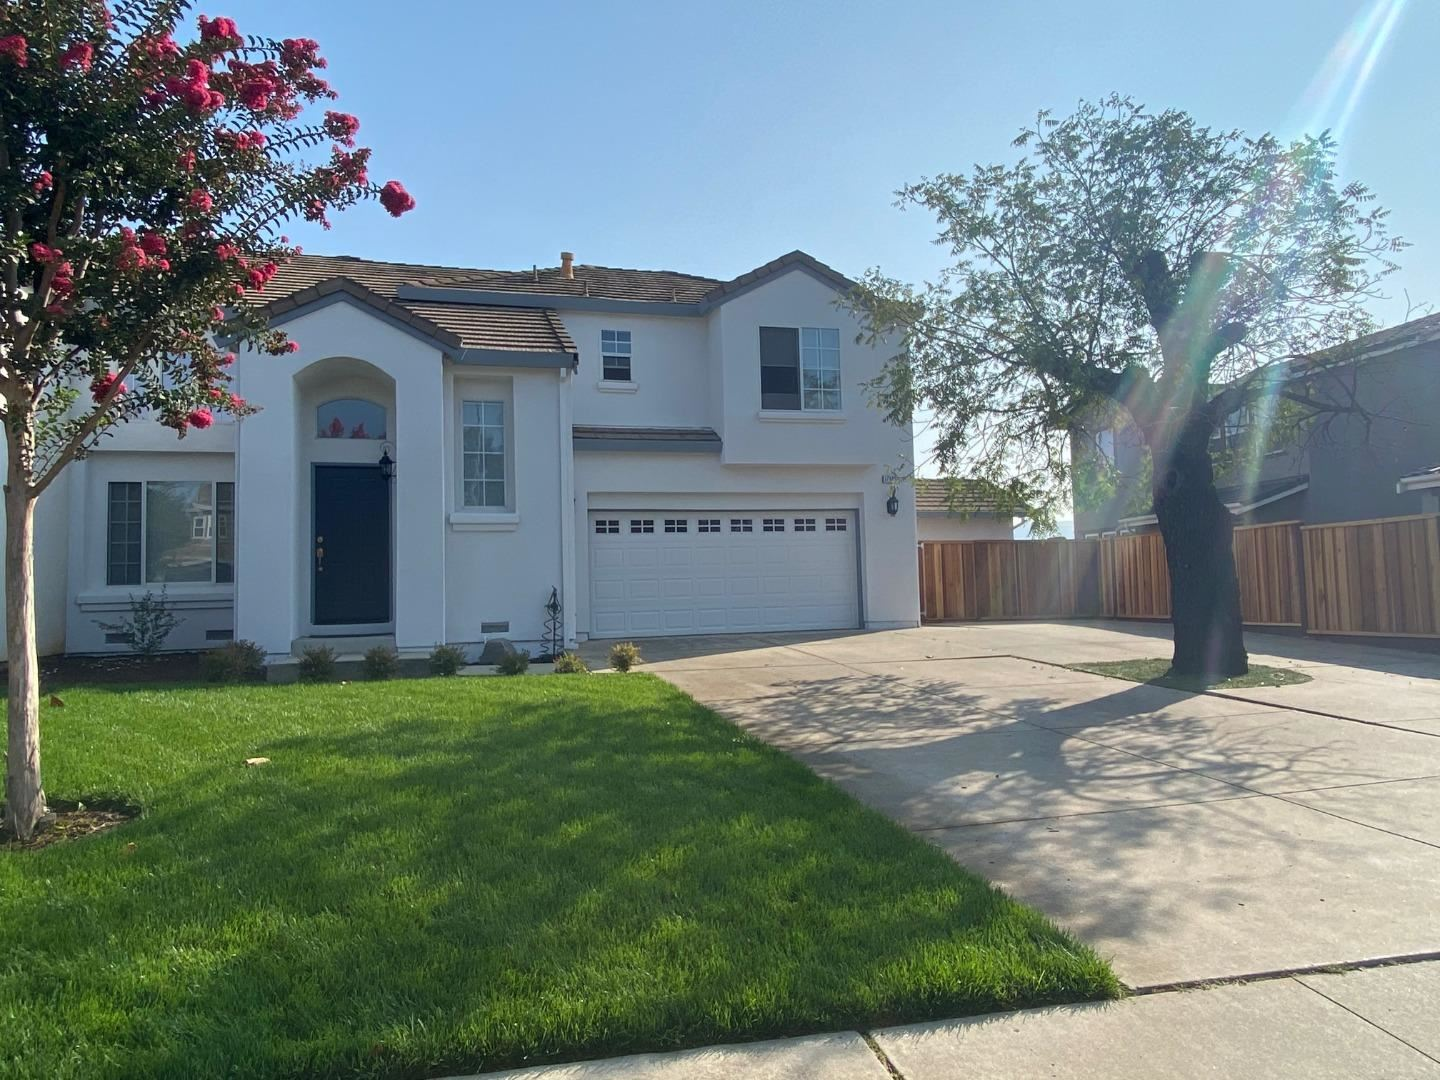 17148 Saint Anthony Drive DR, Morgan Hill, CA 95037 - #: ML81812239